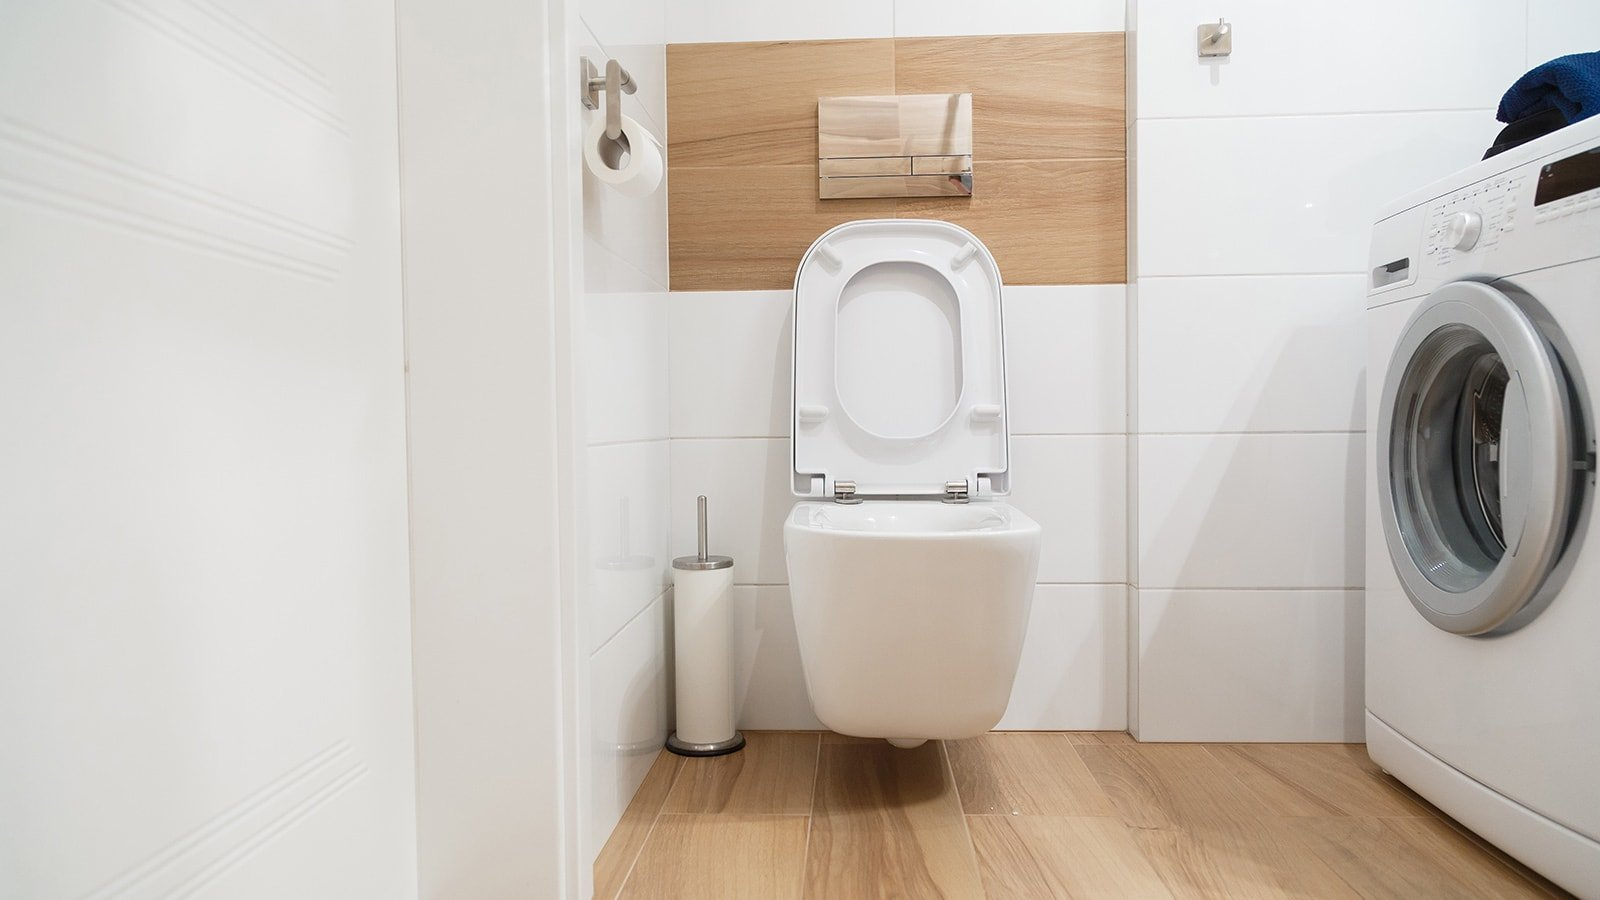 Bathroom with toilet and washing machine